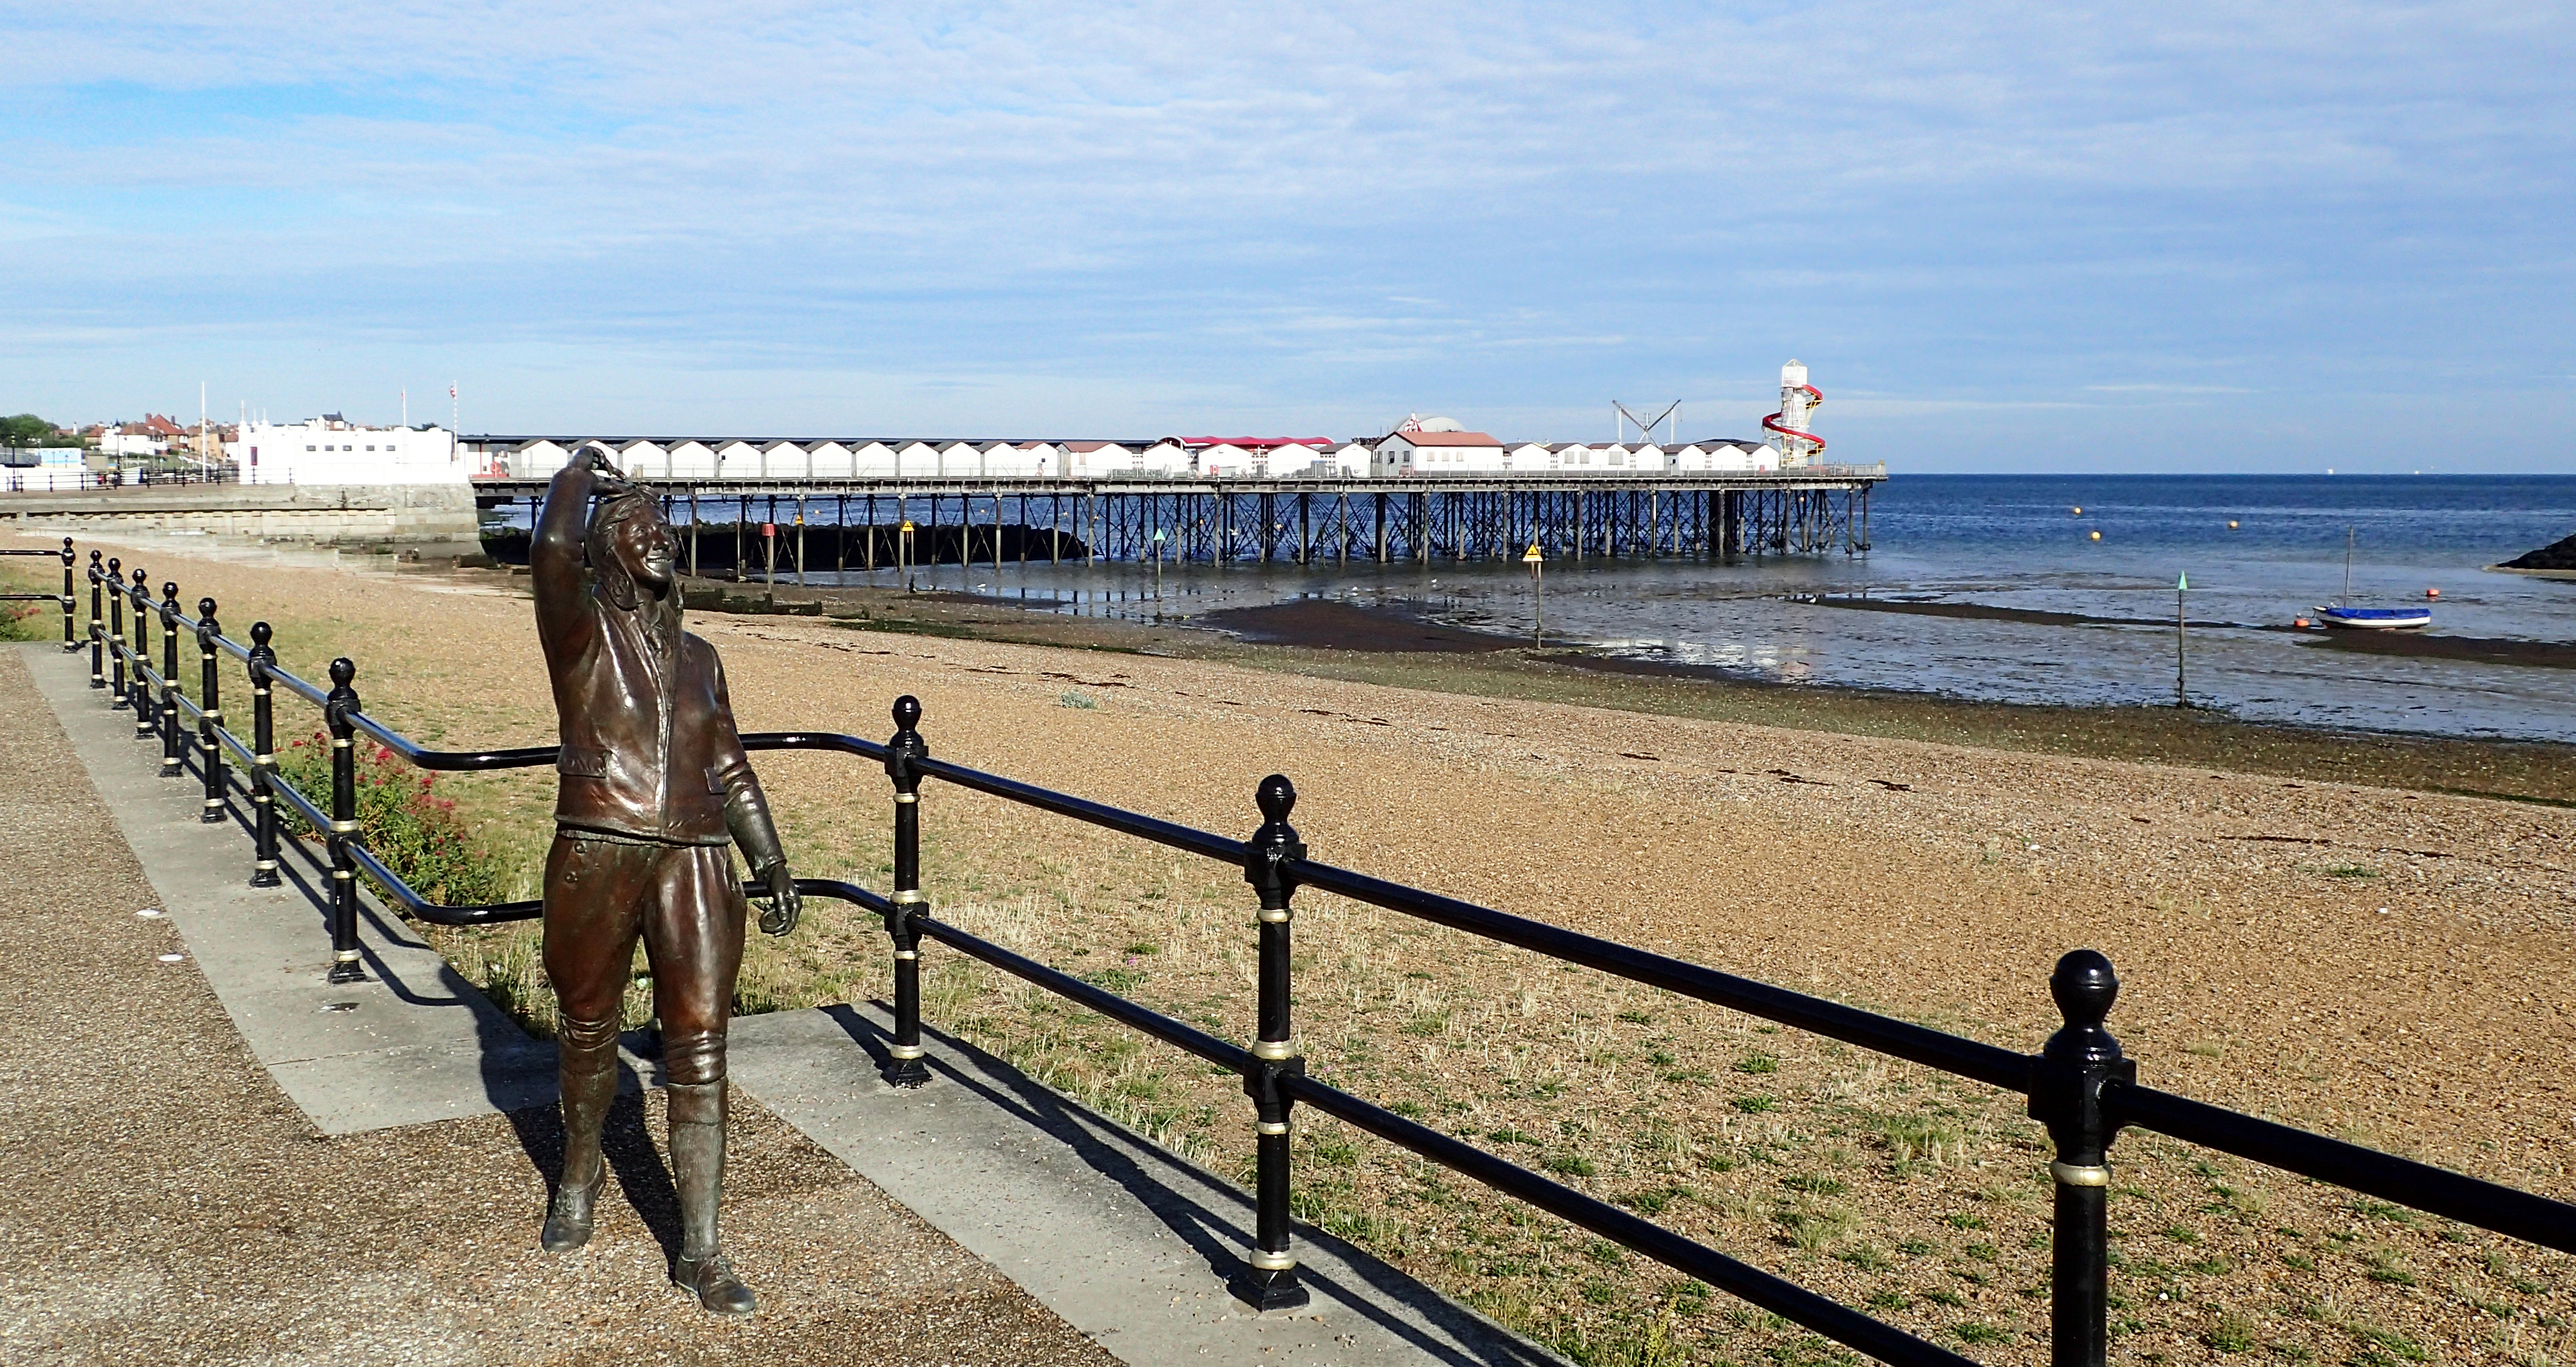 Bronze statue of Amy Johnson gazes out to the estuary where she disappeared on 5th January 1941 when ferrying an aeroplane as part of the Air Transport Auxiliary